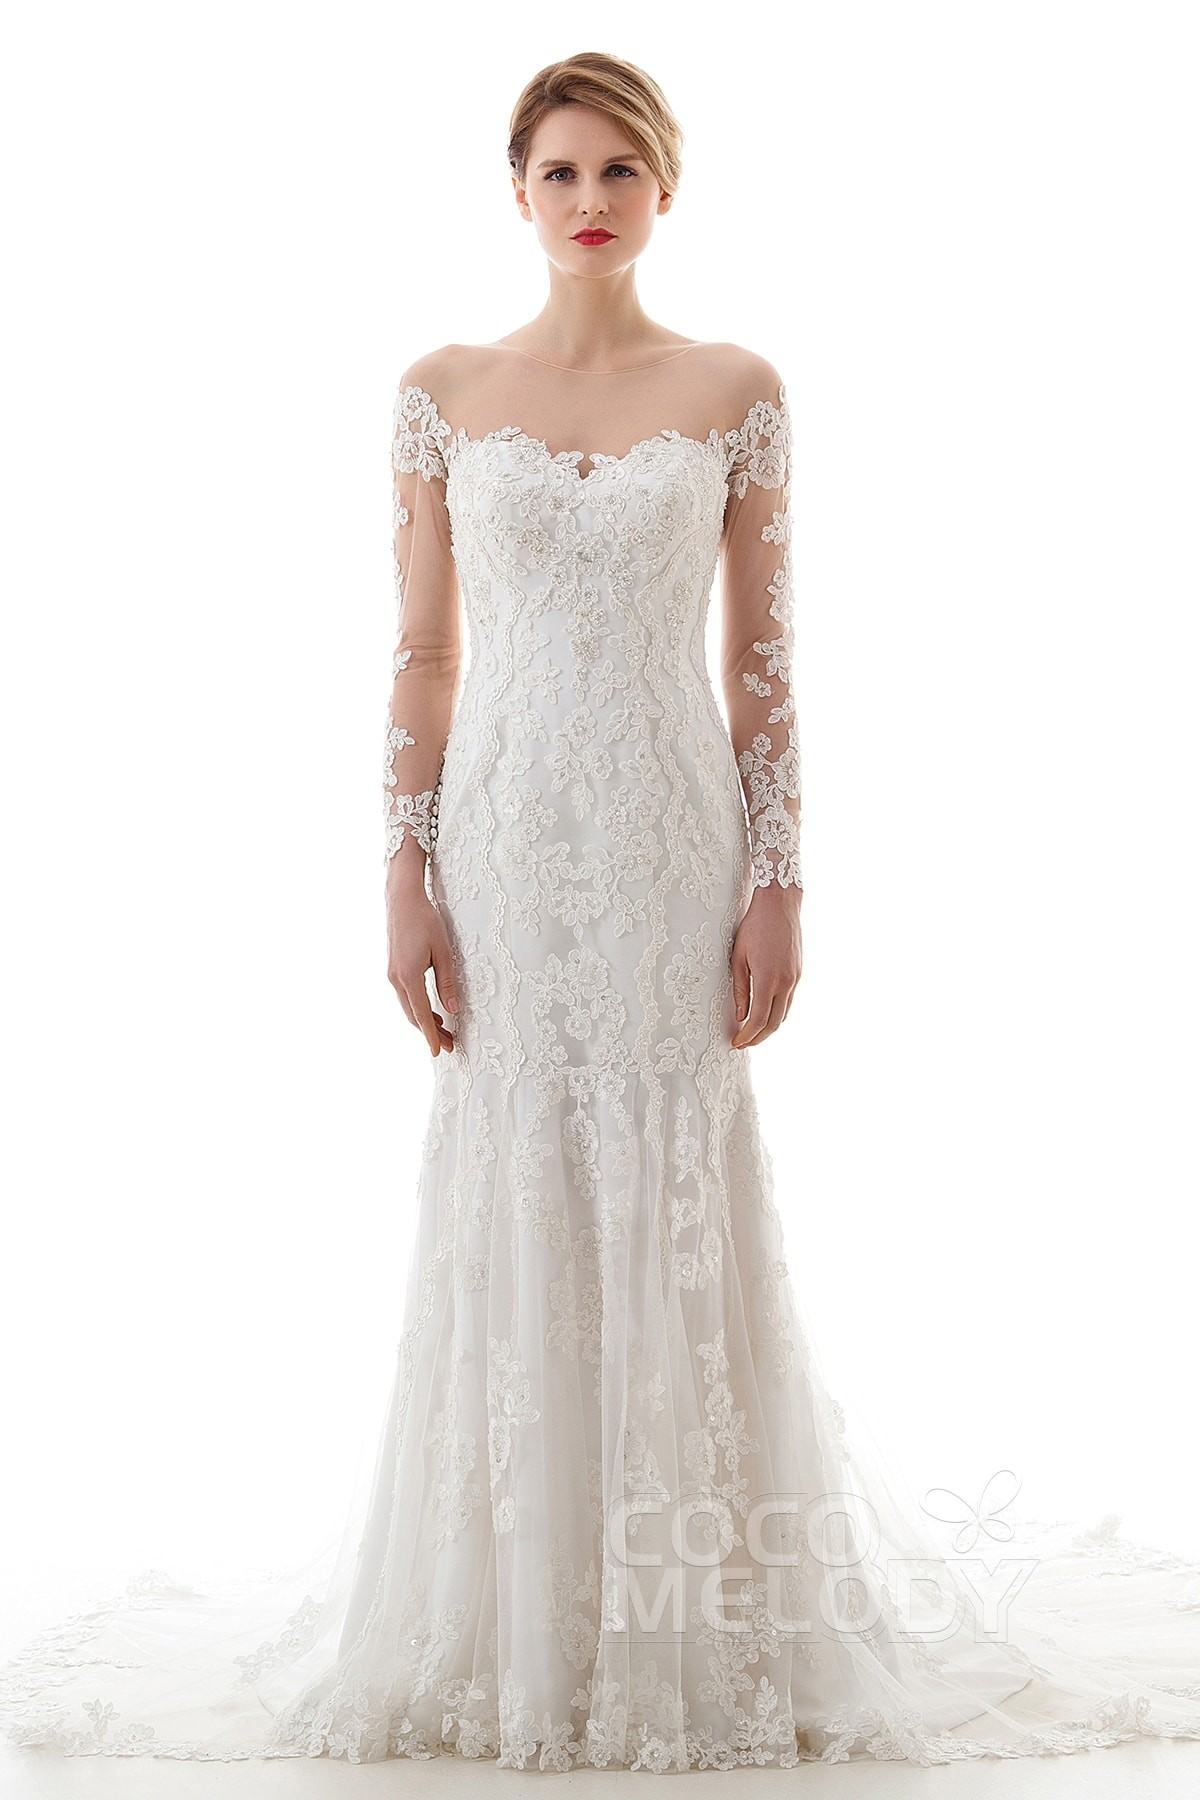 wedding dresses empire wedding dress Charming Trumpet Mermaid Illusion Dropped Court Train Lace and Tulle Ivory